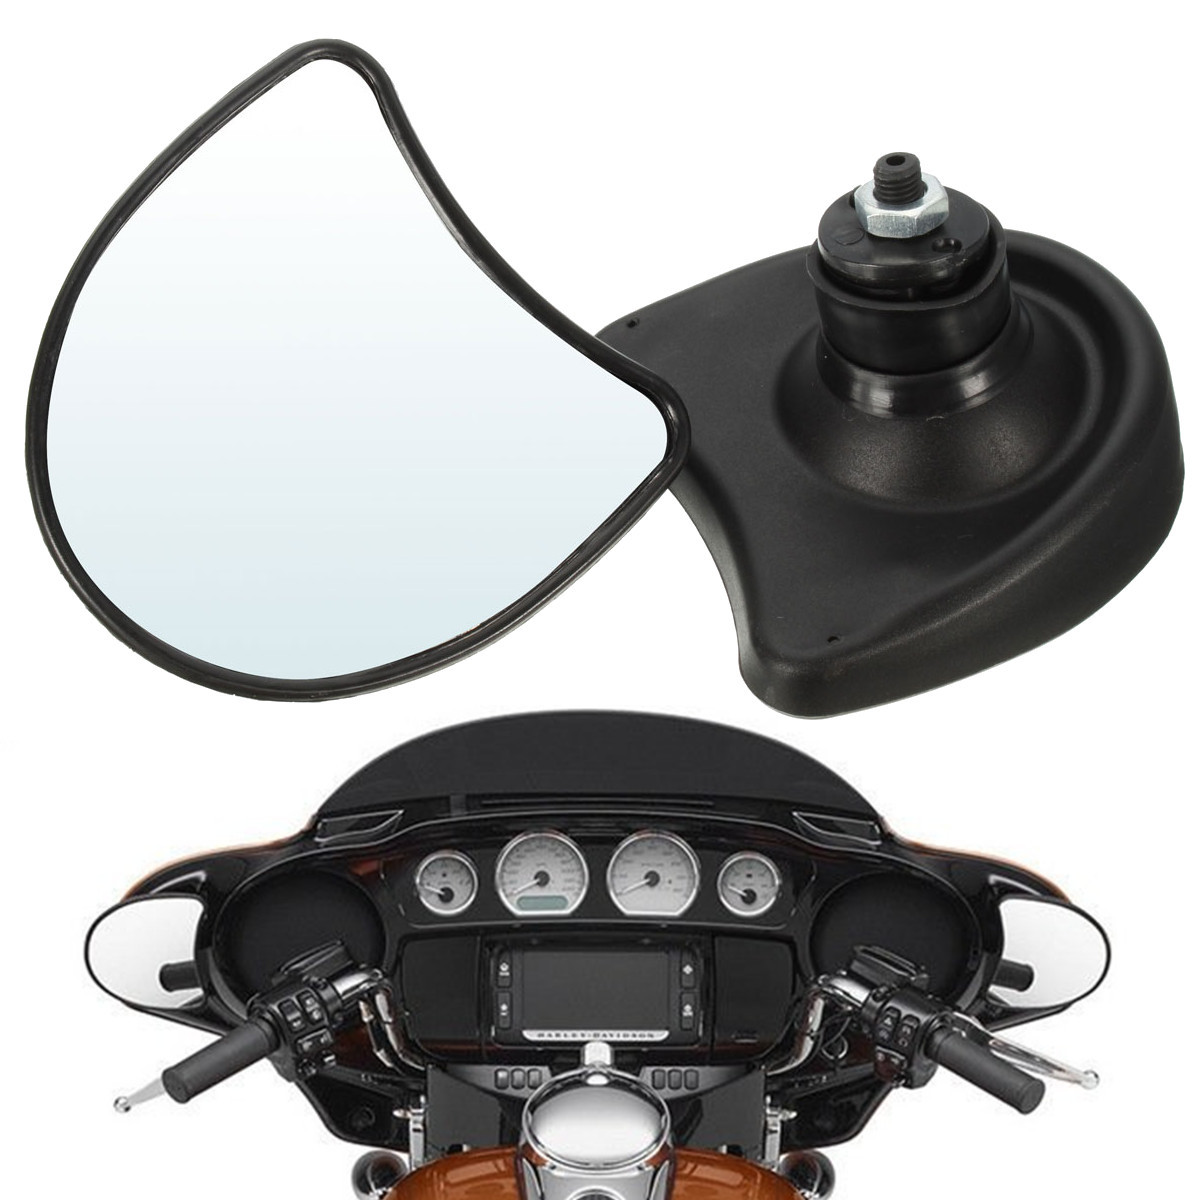 Chrome Motorcycle Rearview Mirrors For Harley Davidson Street Glide FLHX Touring